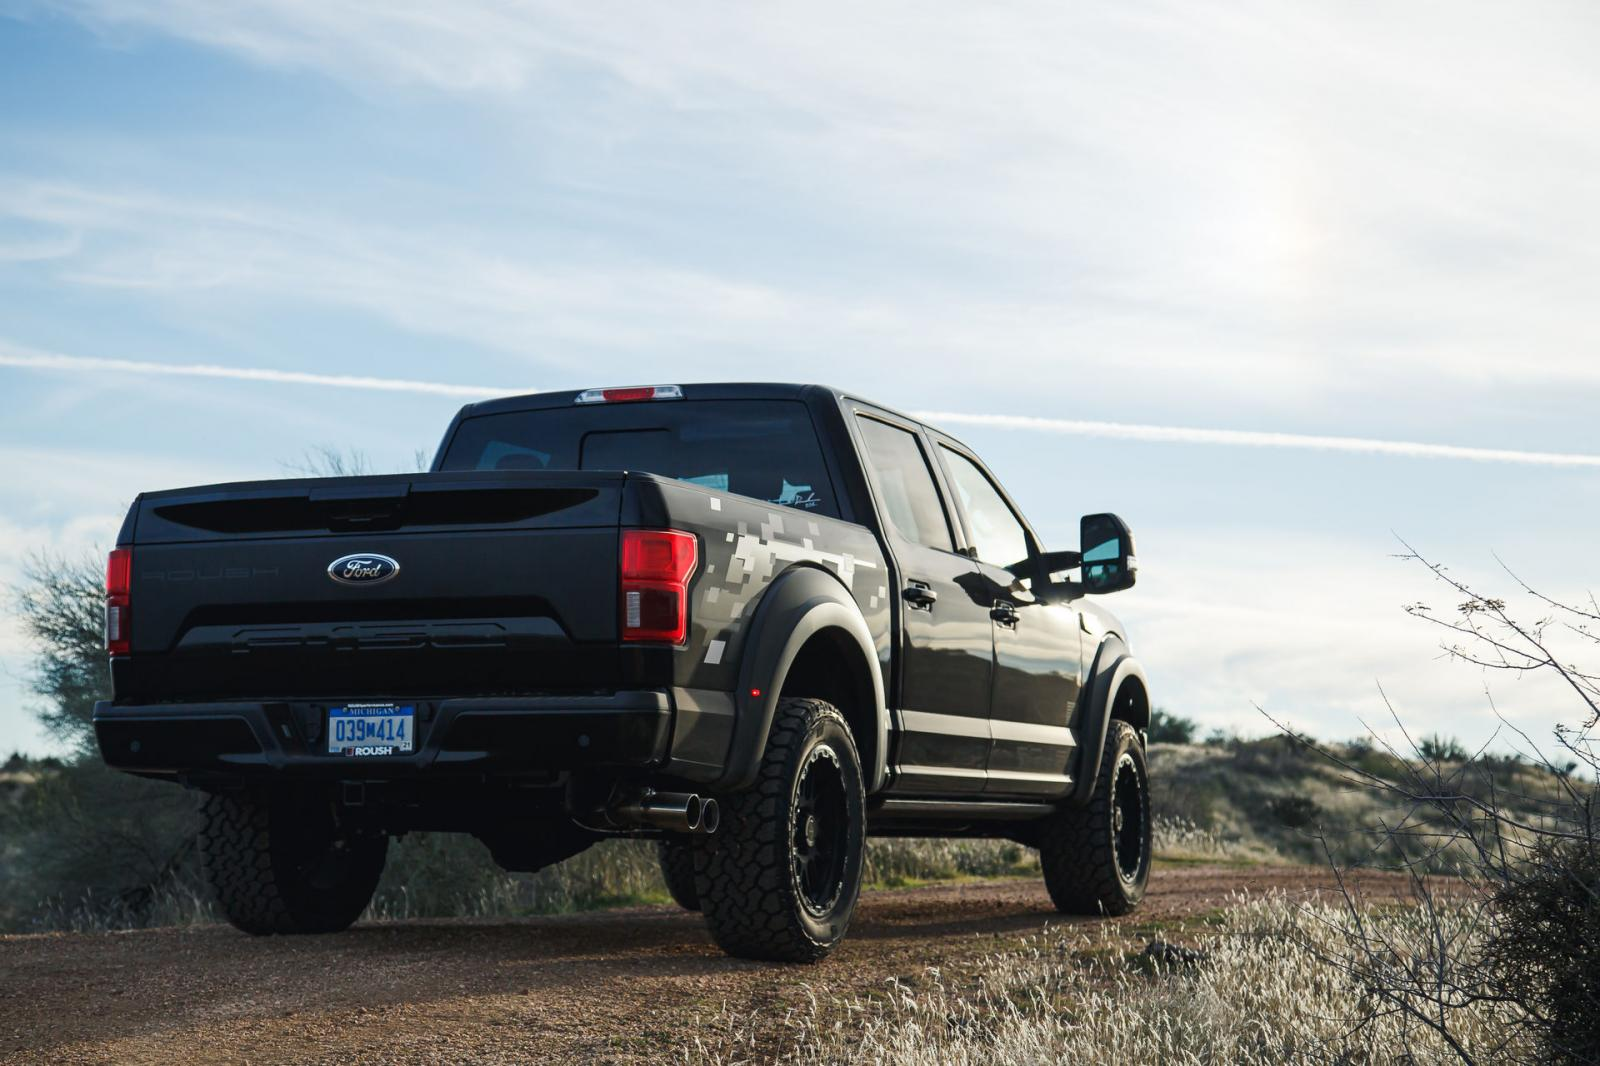 Roush Ford F-150 5.11 Tactical Edition